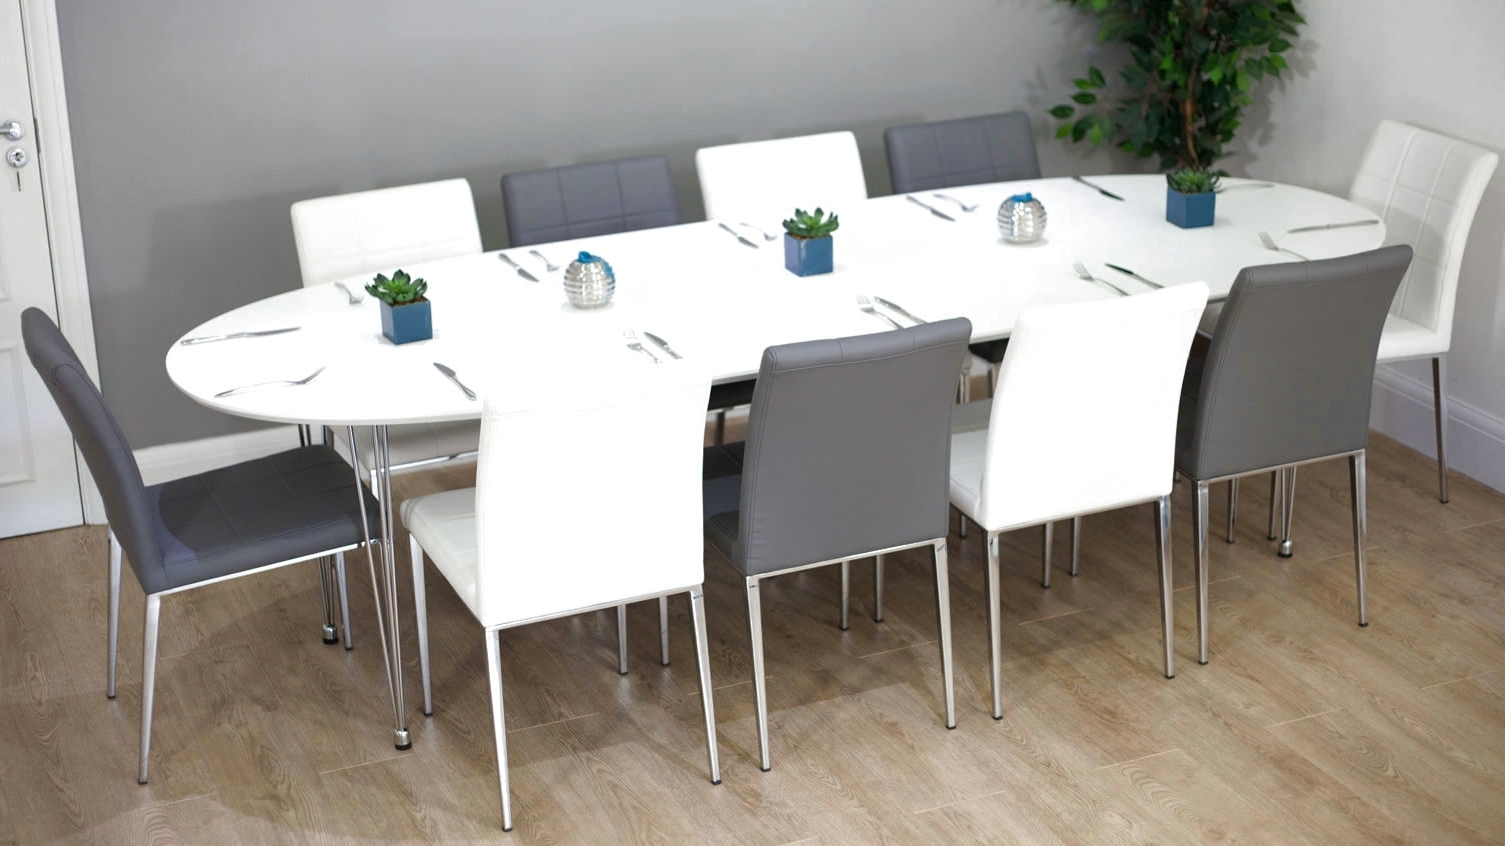 Most Up To Date Dining: Extending Dining Table Seats 10 Pertaining To Extending Dining Table With 10 Seats (View 2 of 25)